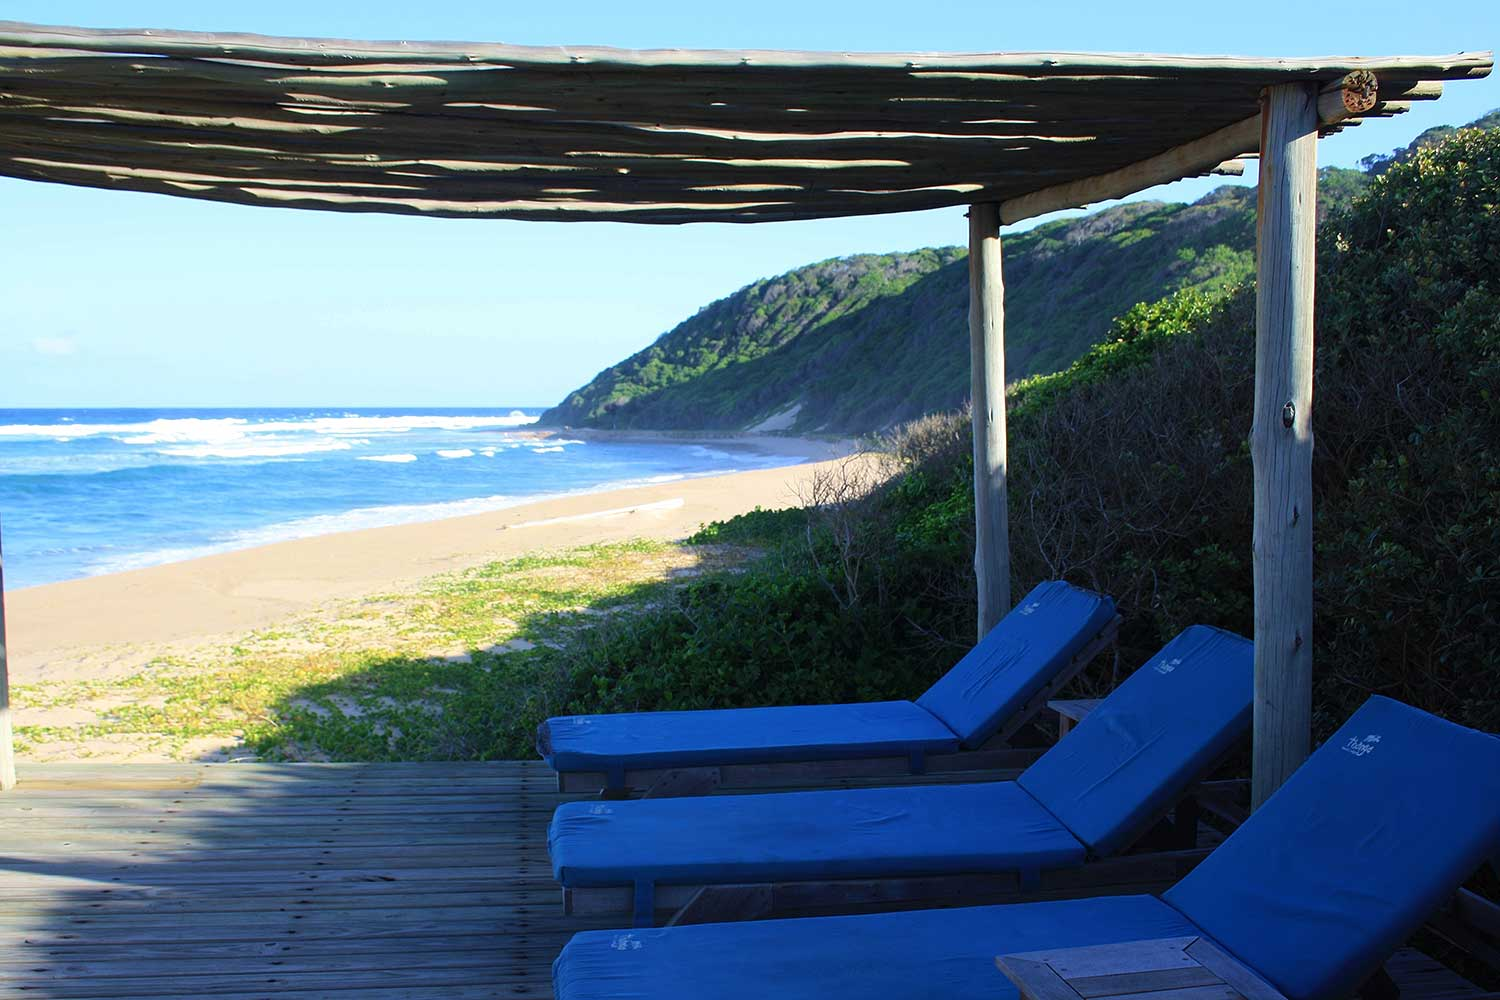 You will find Thonga blue everywhere at the lodge, where the decor reflects the unique blue-green colour of the sea